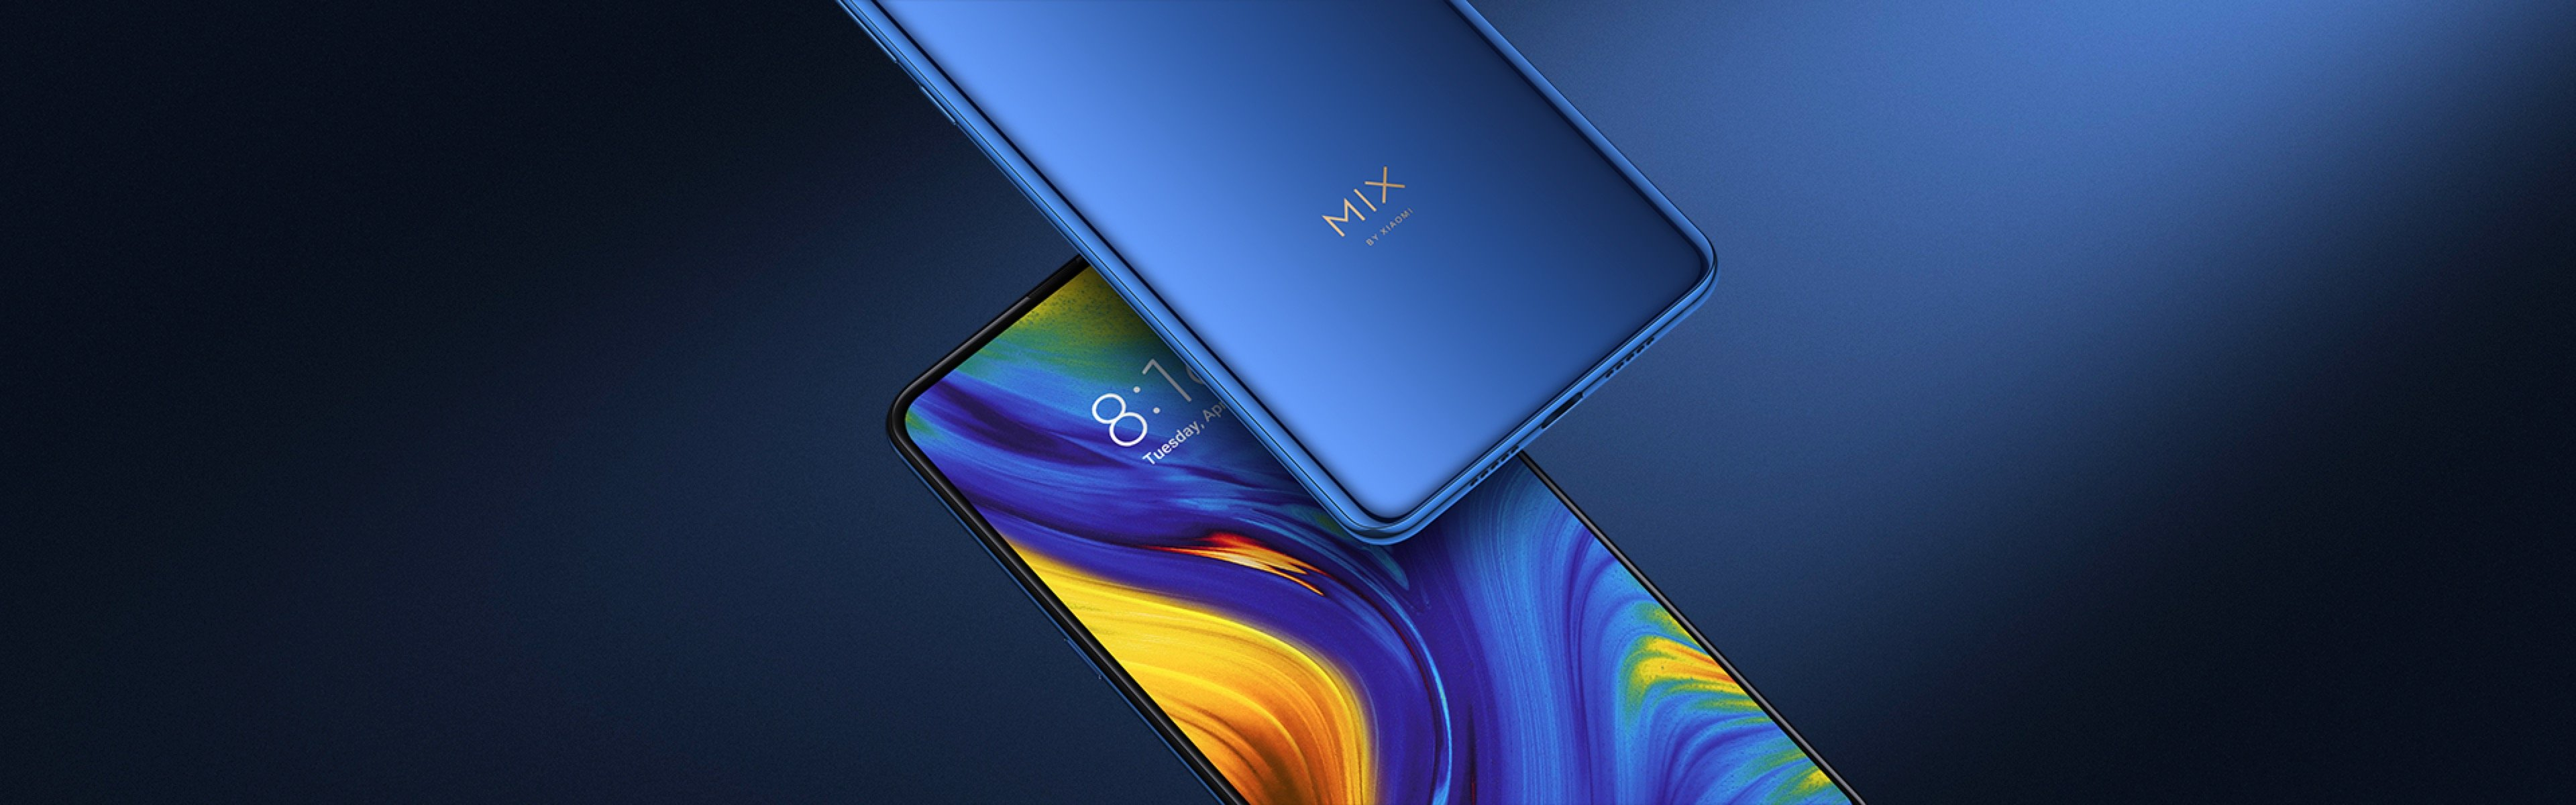 Xiaomi Mi MIX 3 review: Showing its rivals what an all-screen flagship really looks like